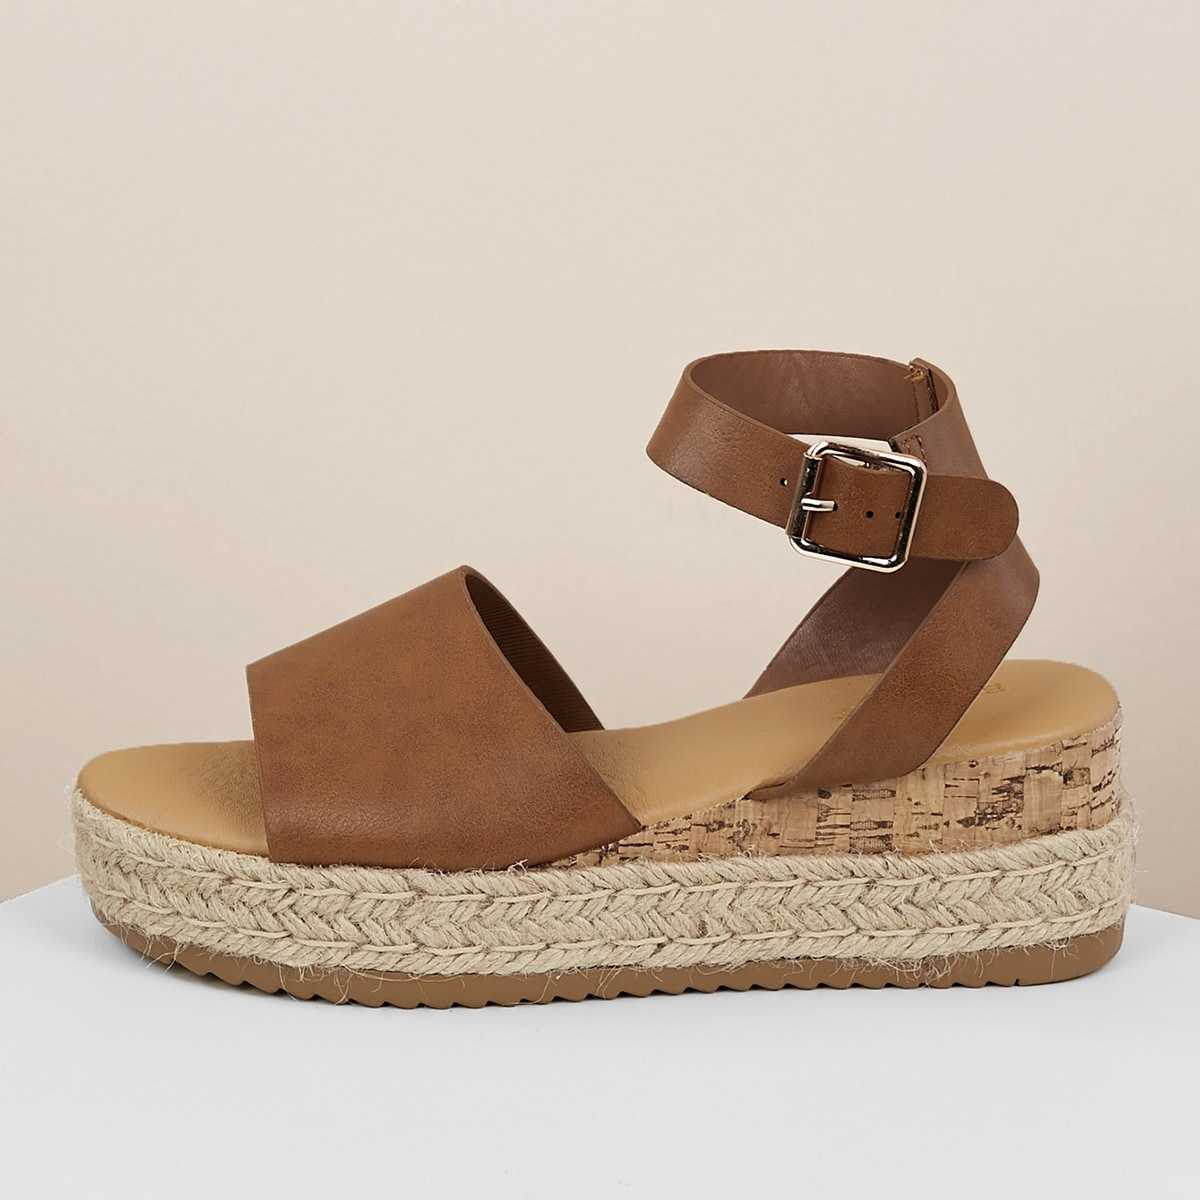 Single Band Buckled Ankle Jute Low Wedge Sandals in Tan by ROMWE on GOOFASH